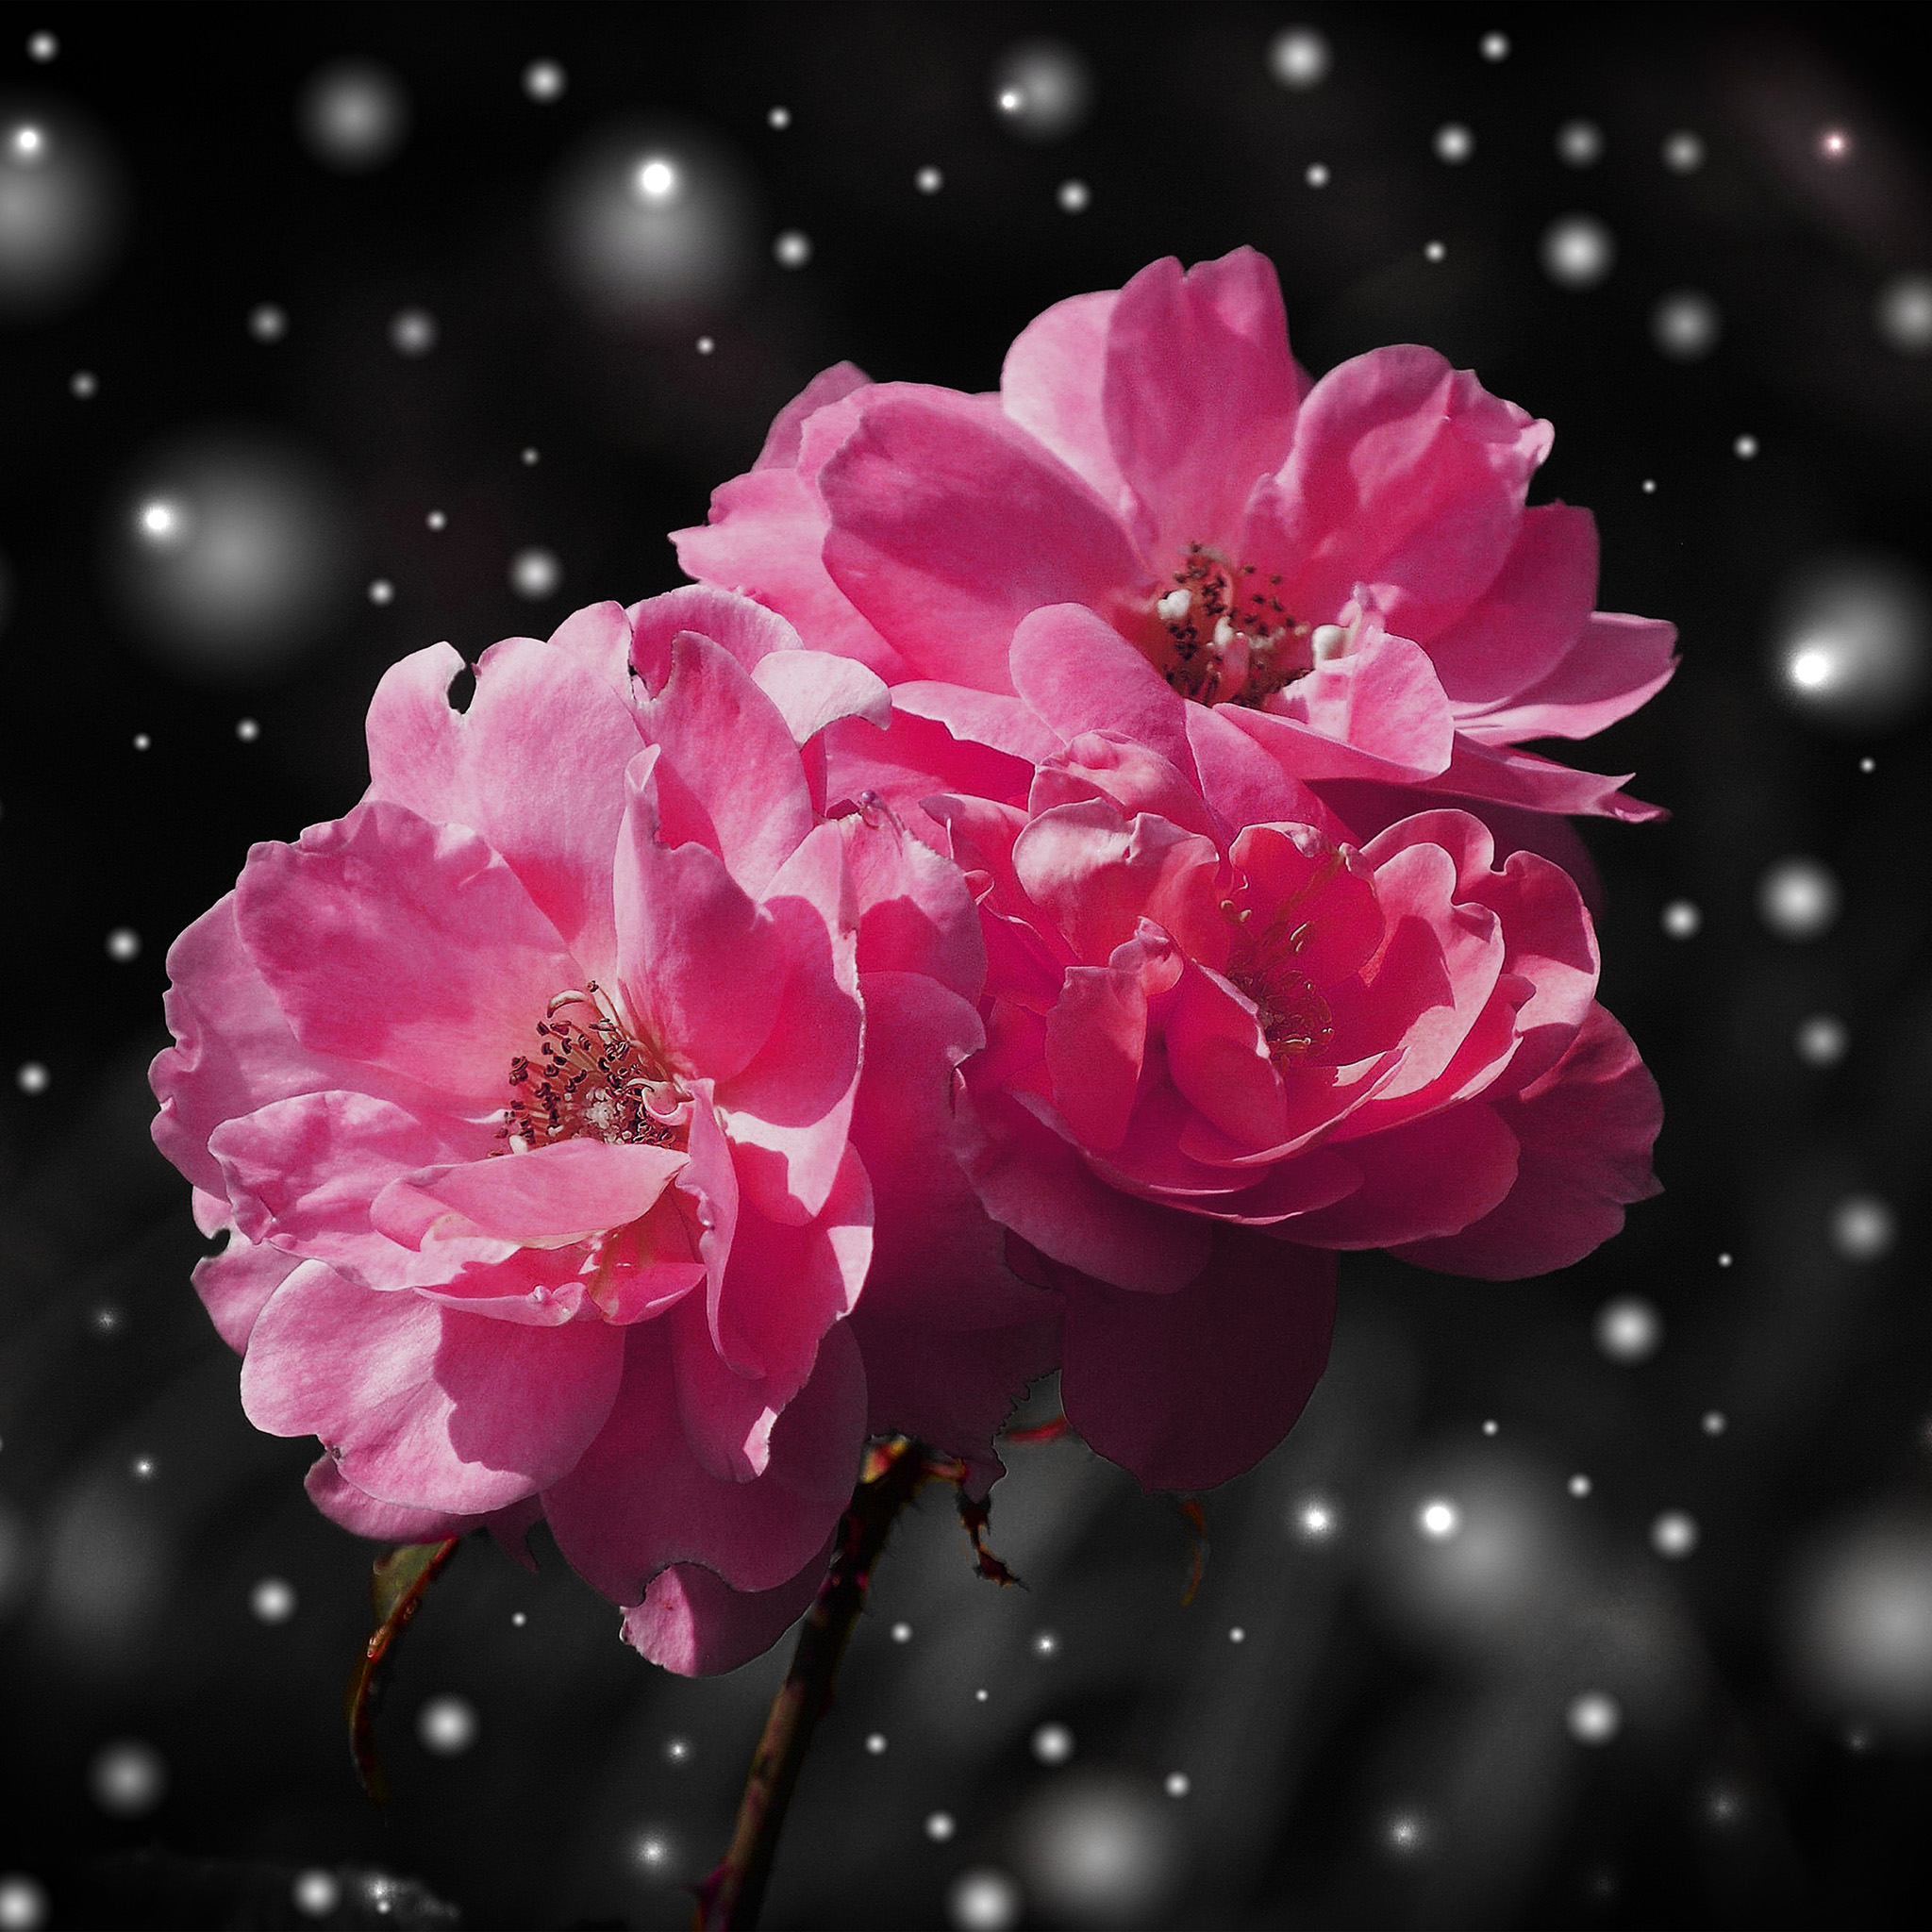 Nc38-flower-red-snow